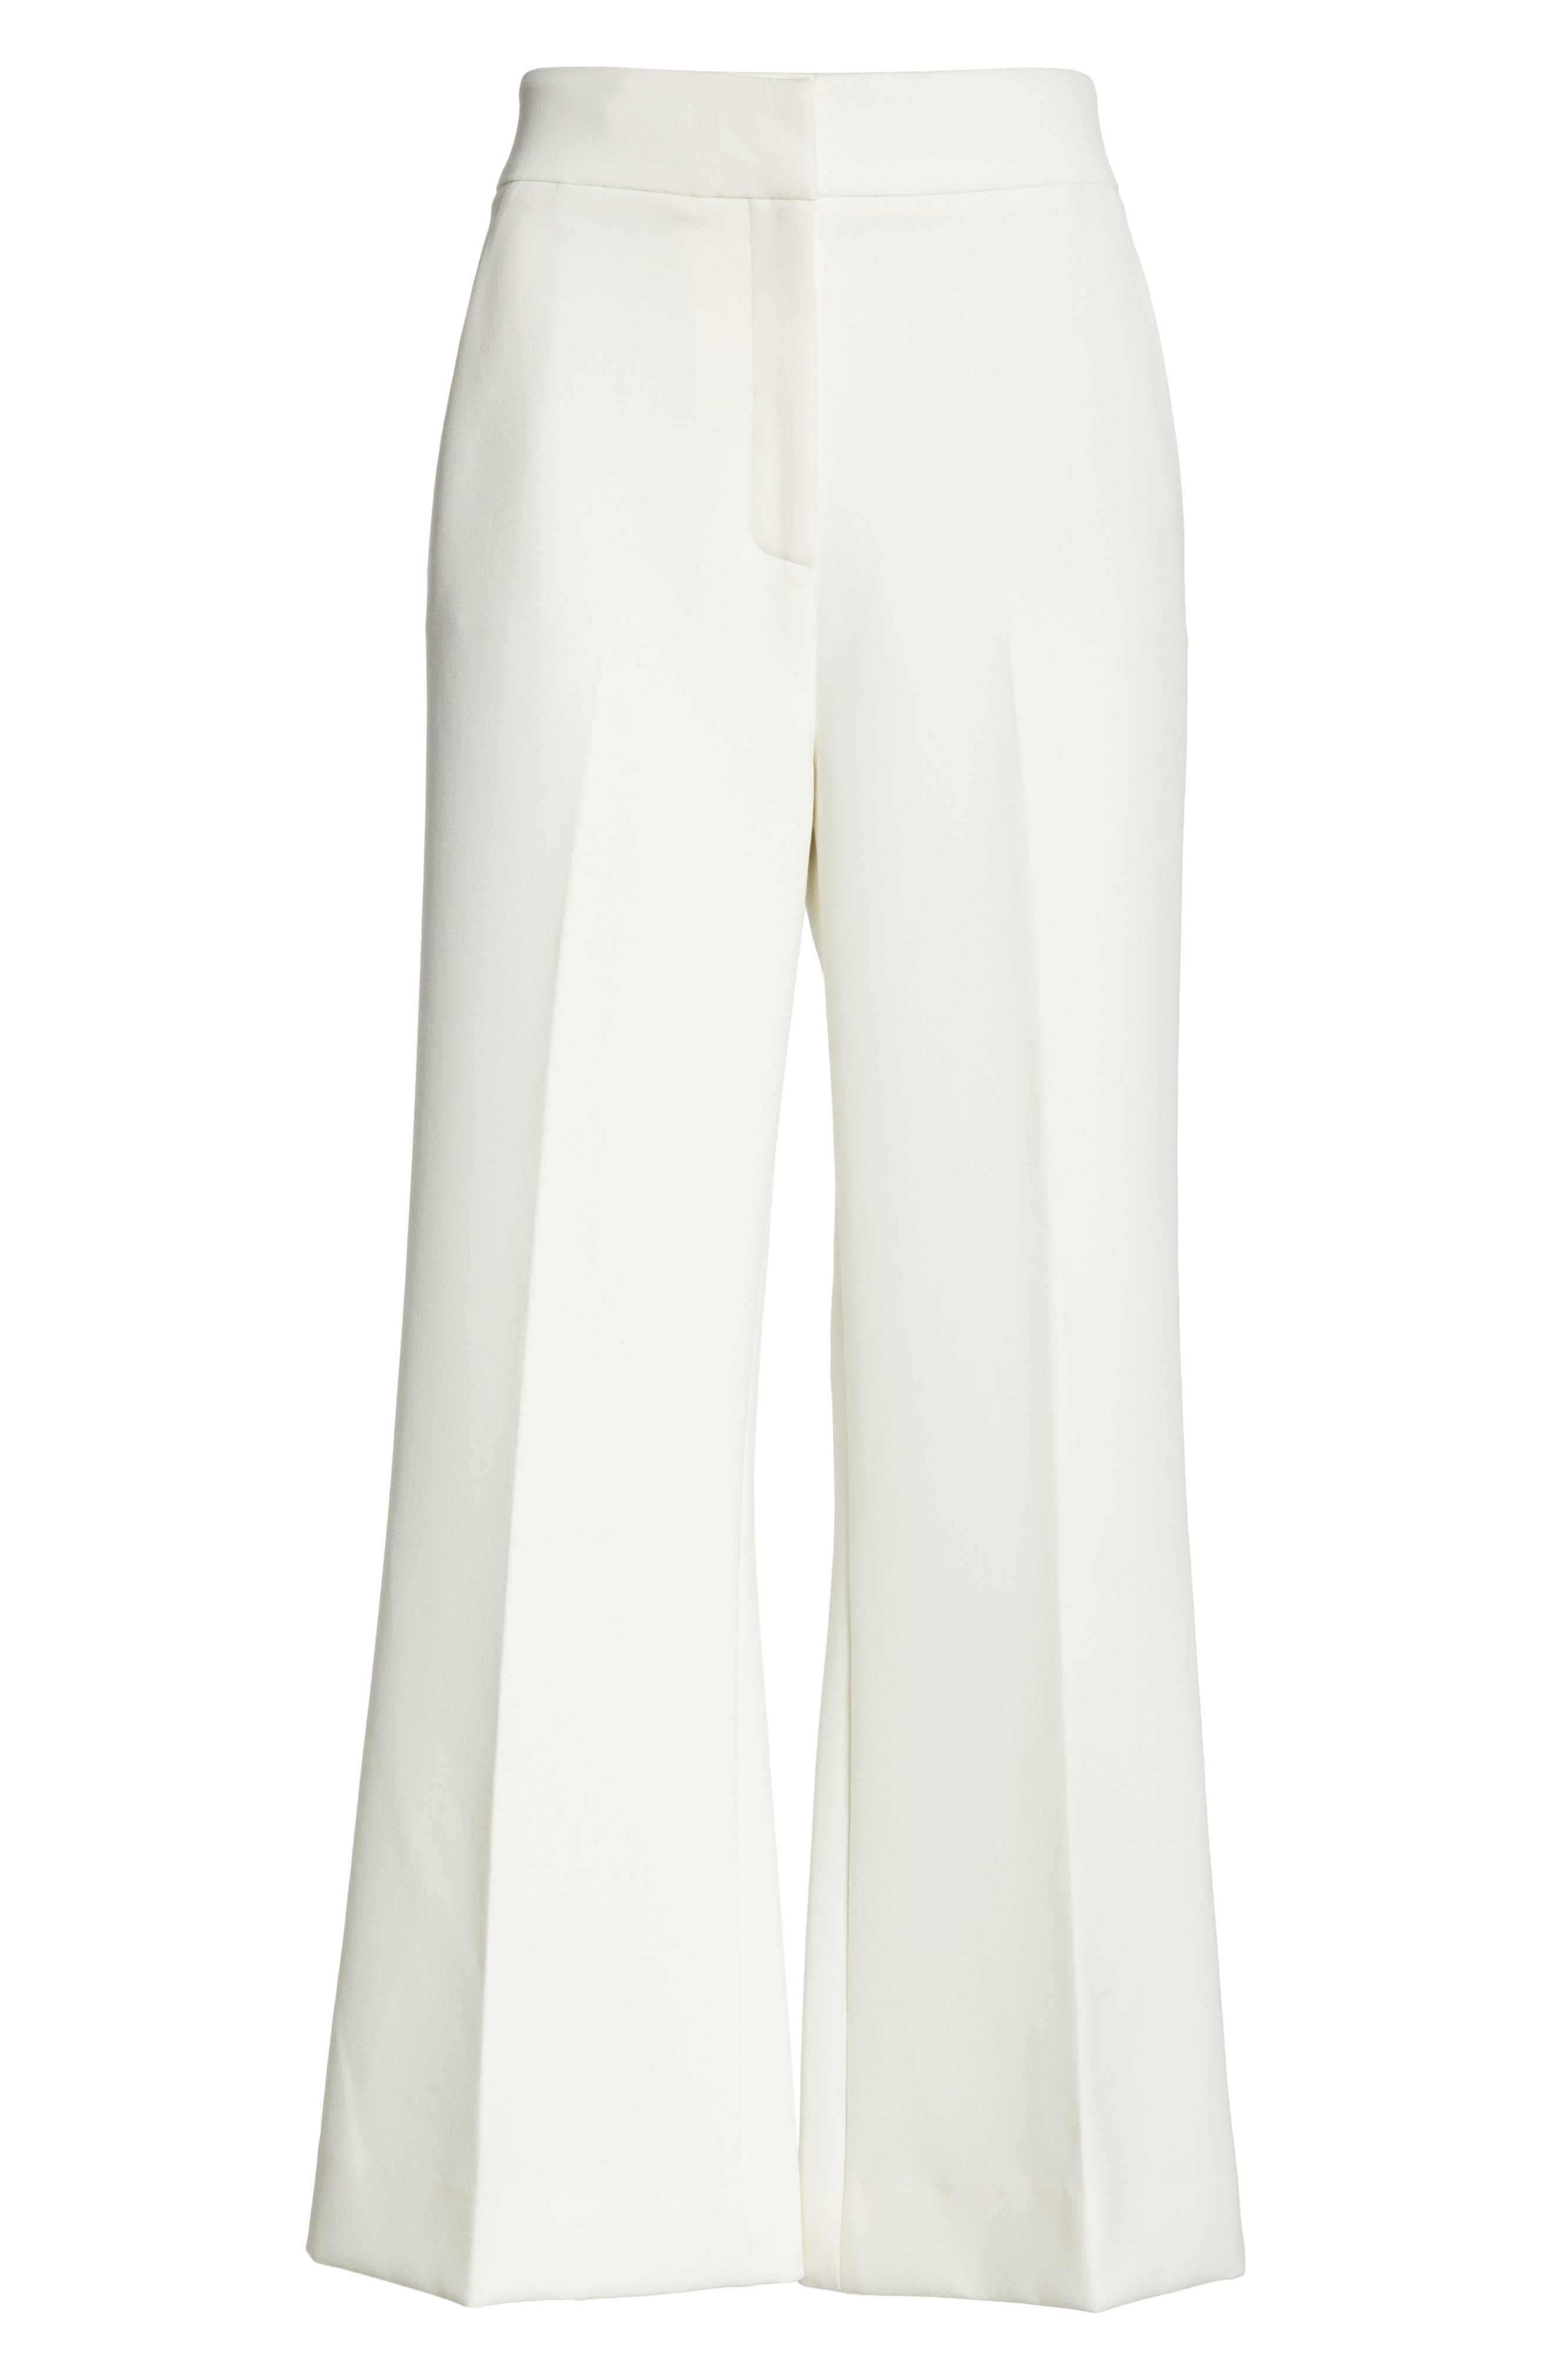 ST. JOHN COLLECTION, Bella Double Weave Crop Flare Pants, Alternate thumbnail 6, color, CREAM